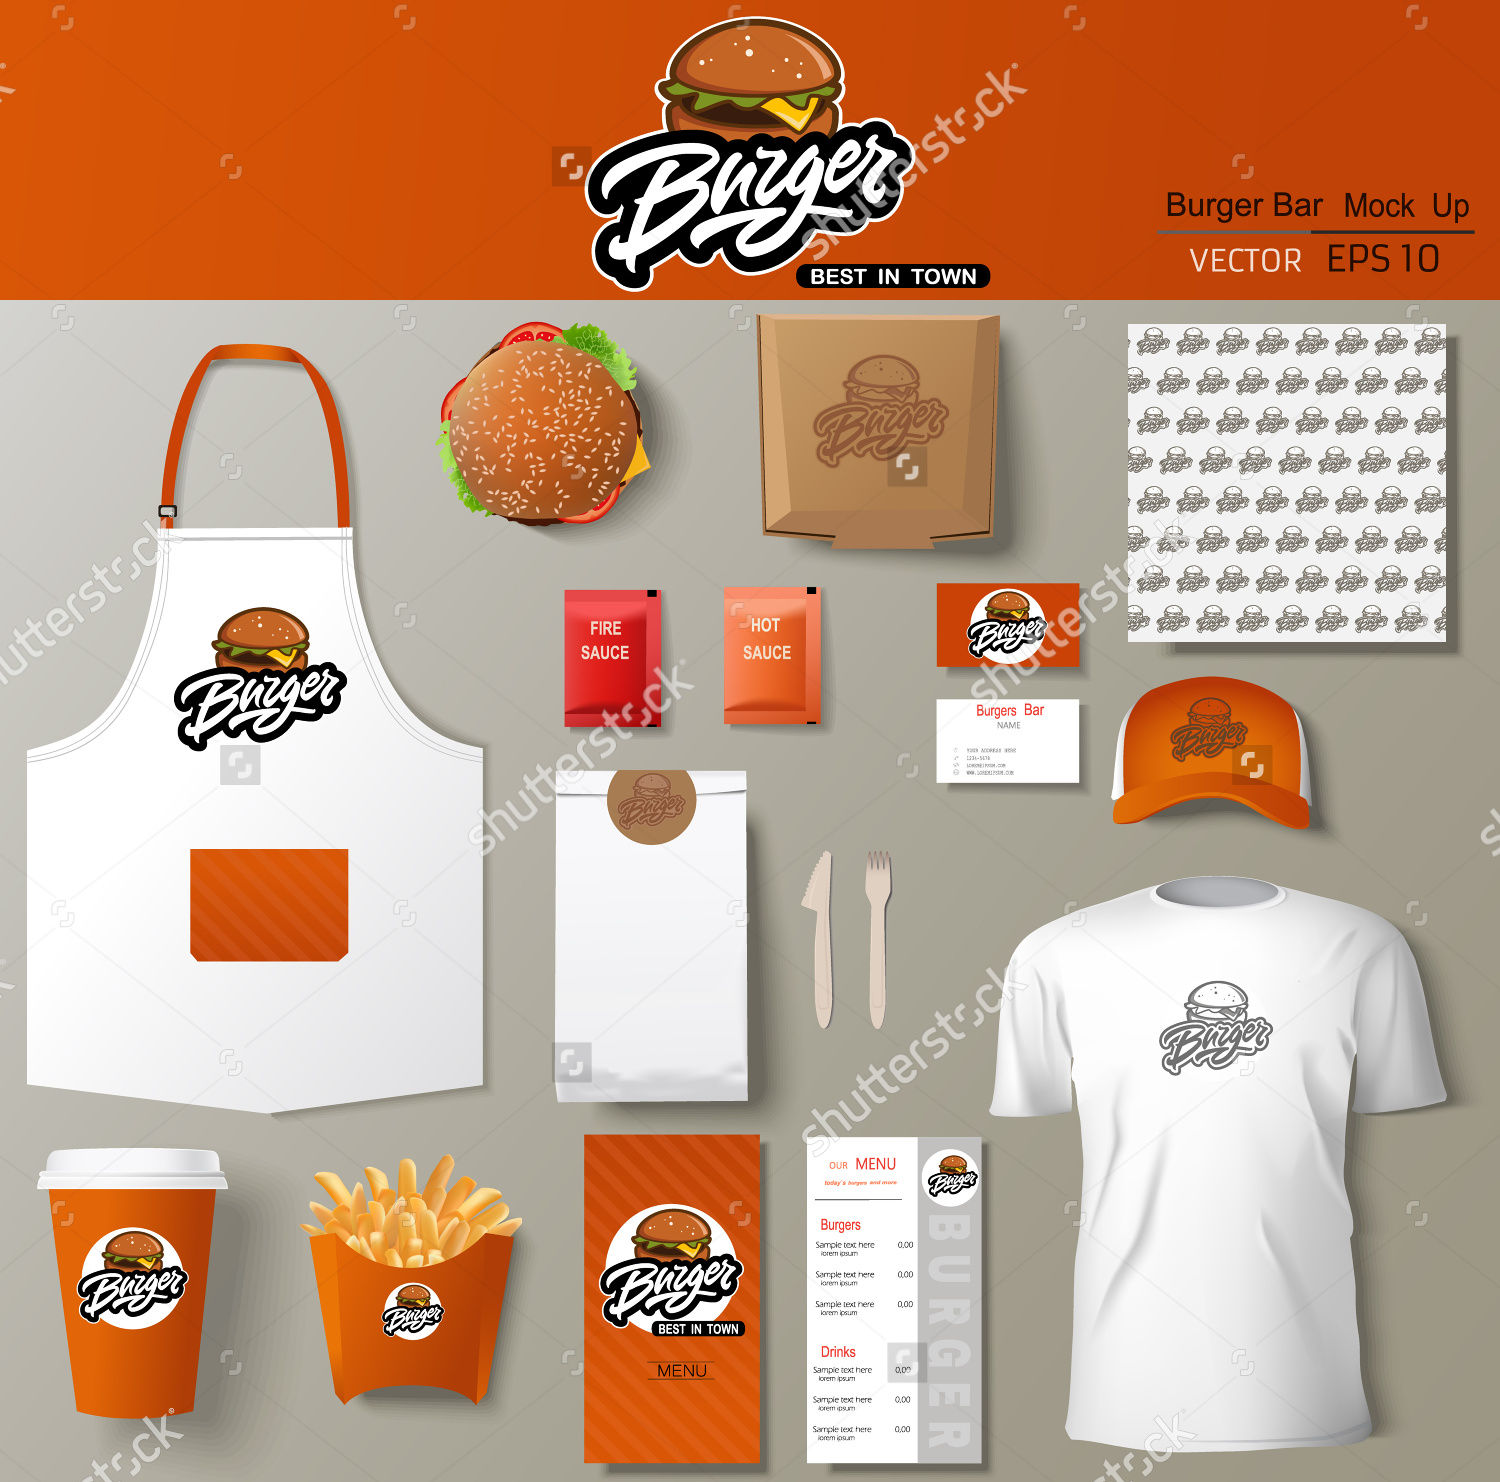 burger bar corporate identity template